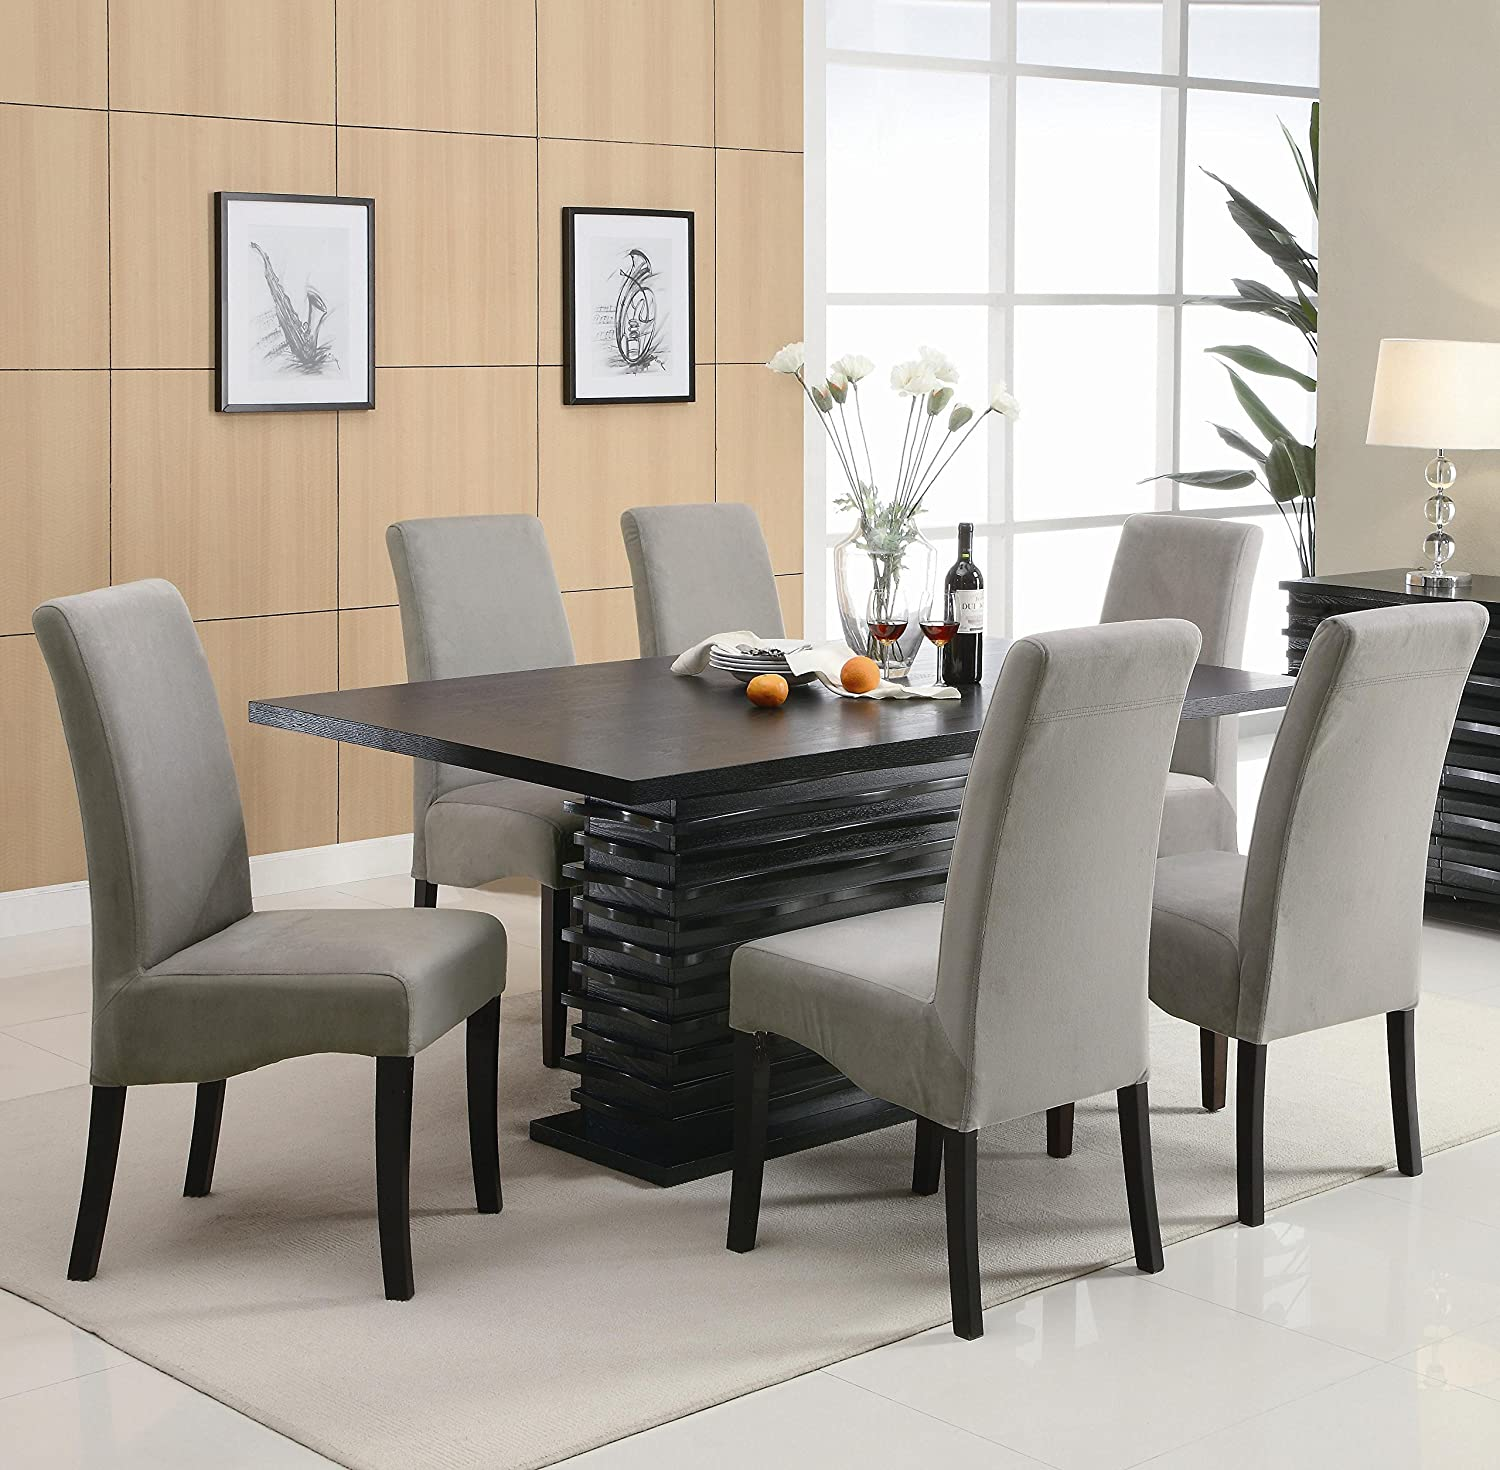 Amazon Com Coaster Home Furnishings Stanton Contemporary Dining Set With Dining Table 6 Grey Dining Chairs And Server In Black Table Chair Sets